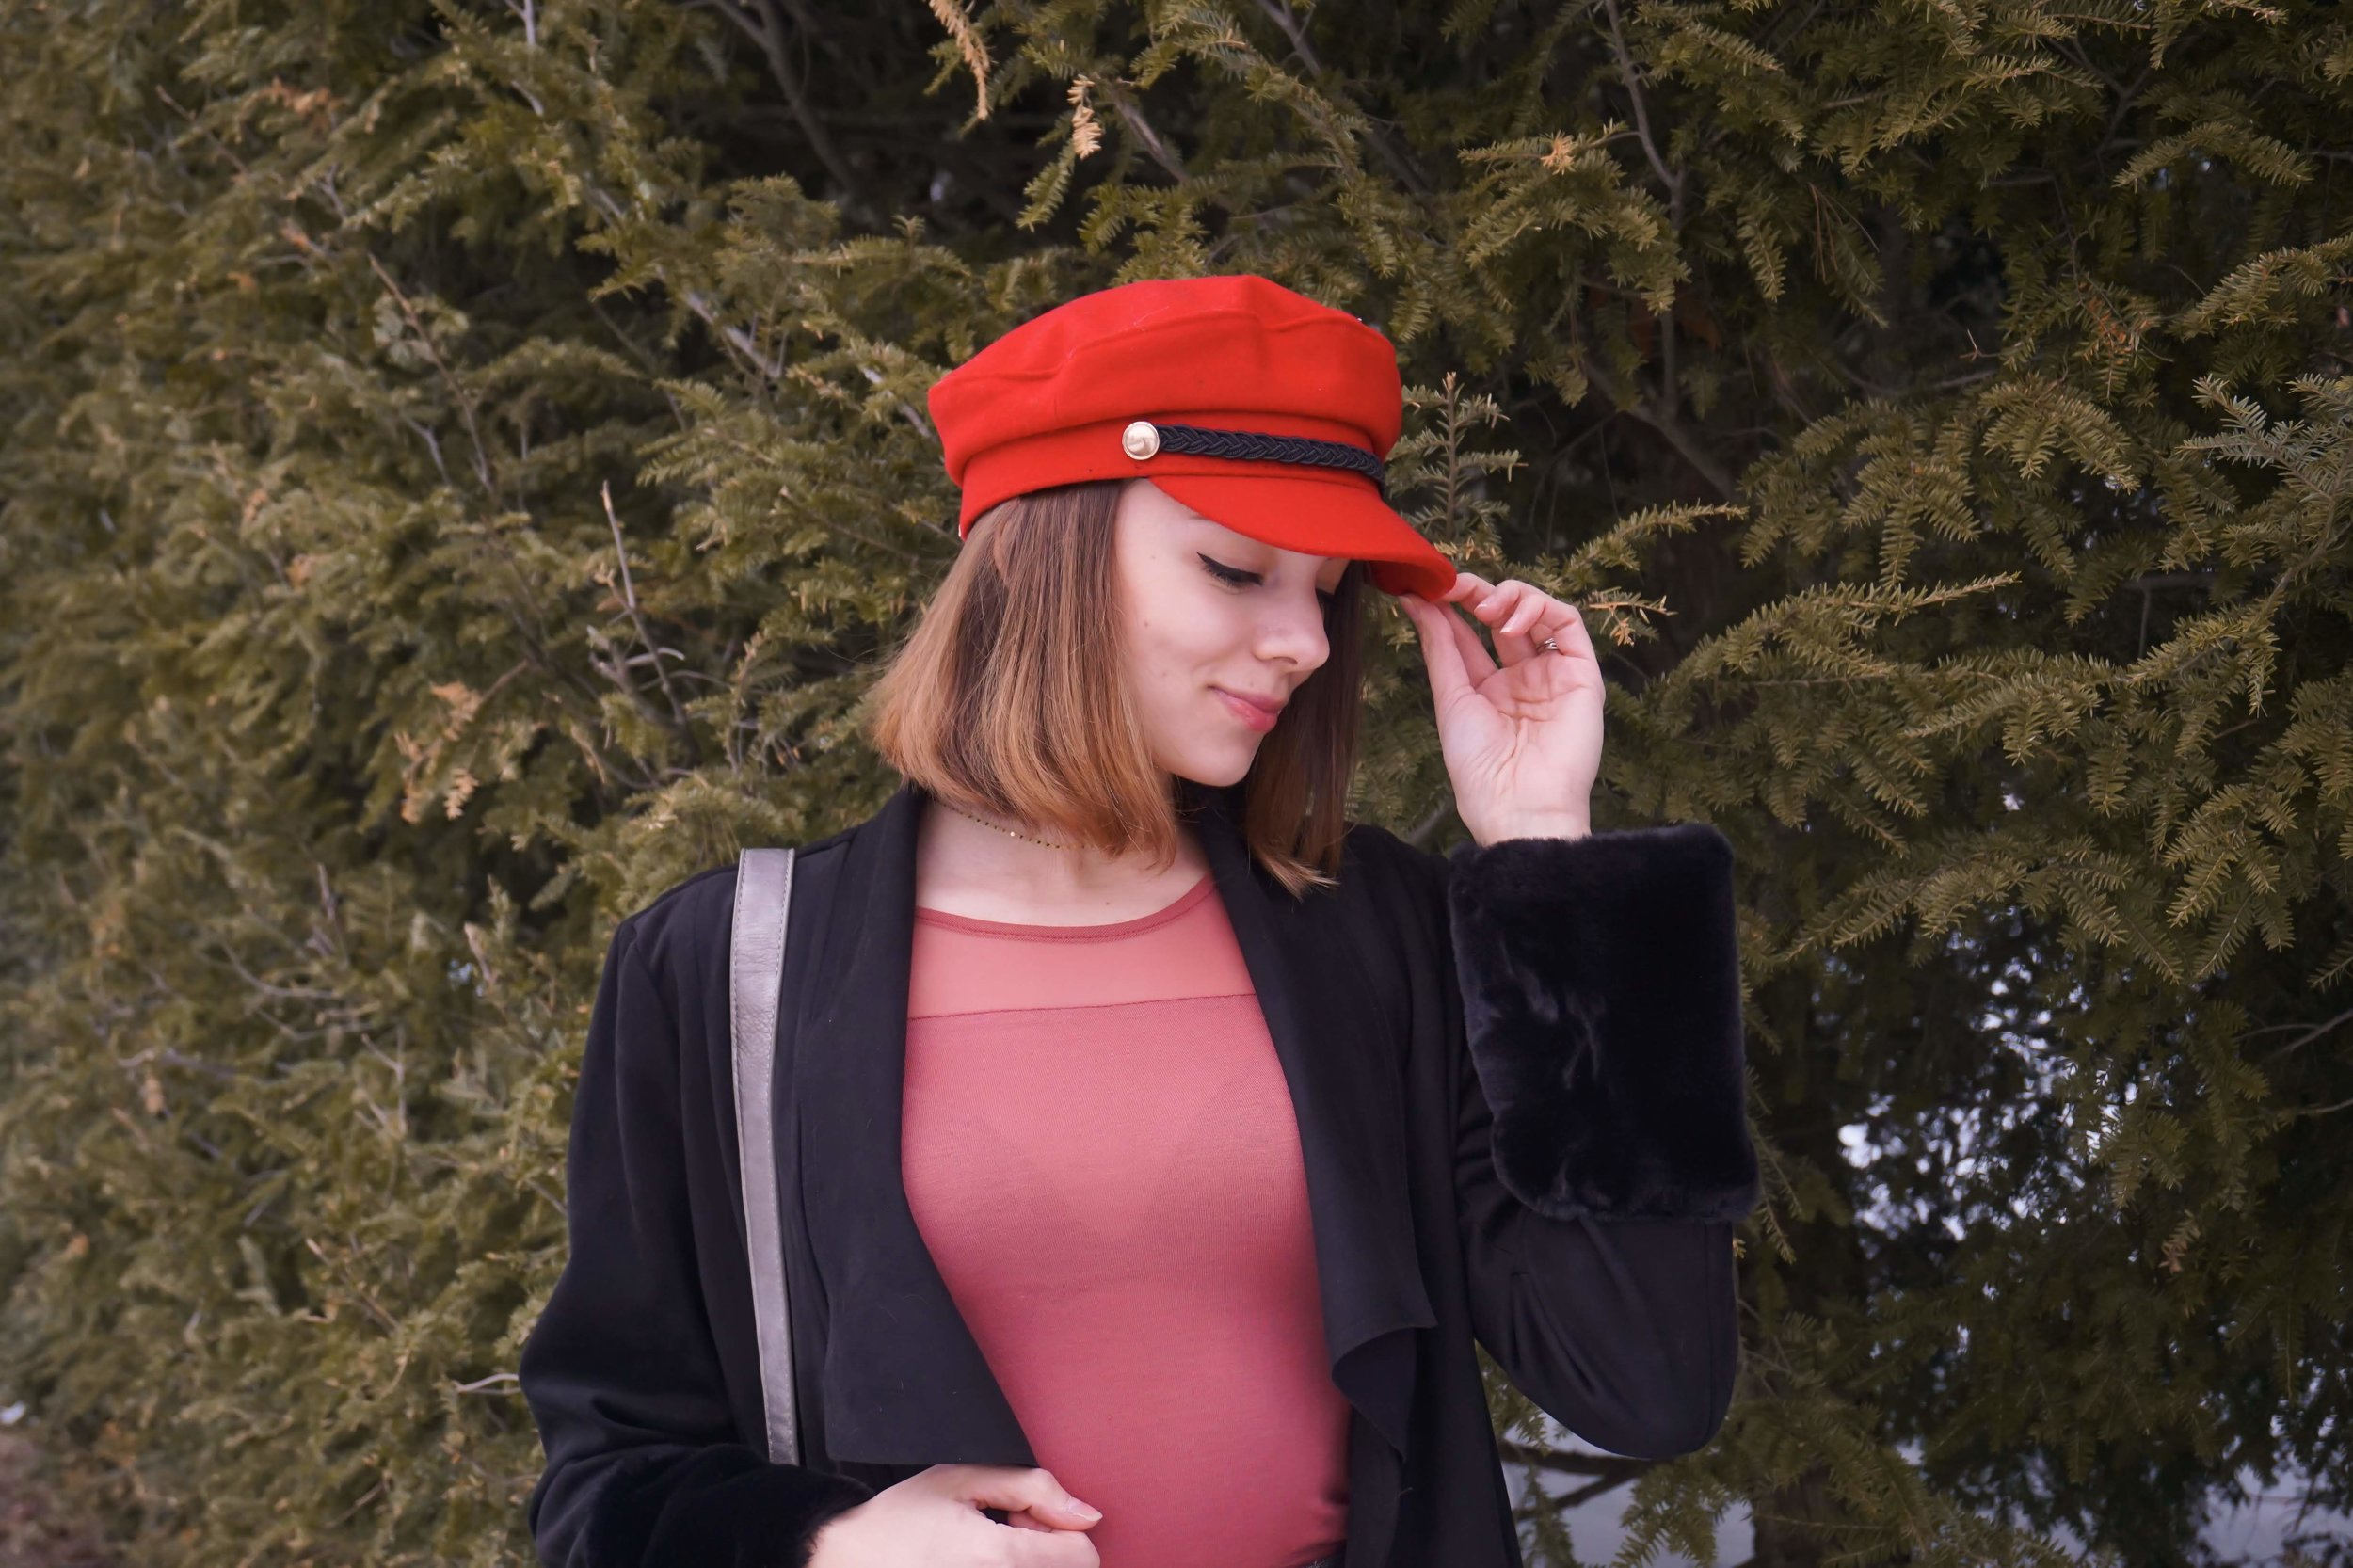 Fashion blogger is posing in the nature, wearing a red hat, salmon top, black jacket, gray pencil skirt, and faux-leather boots.